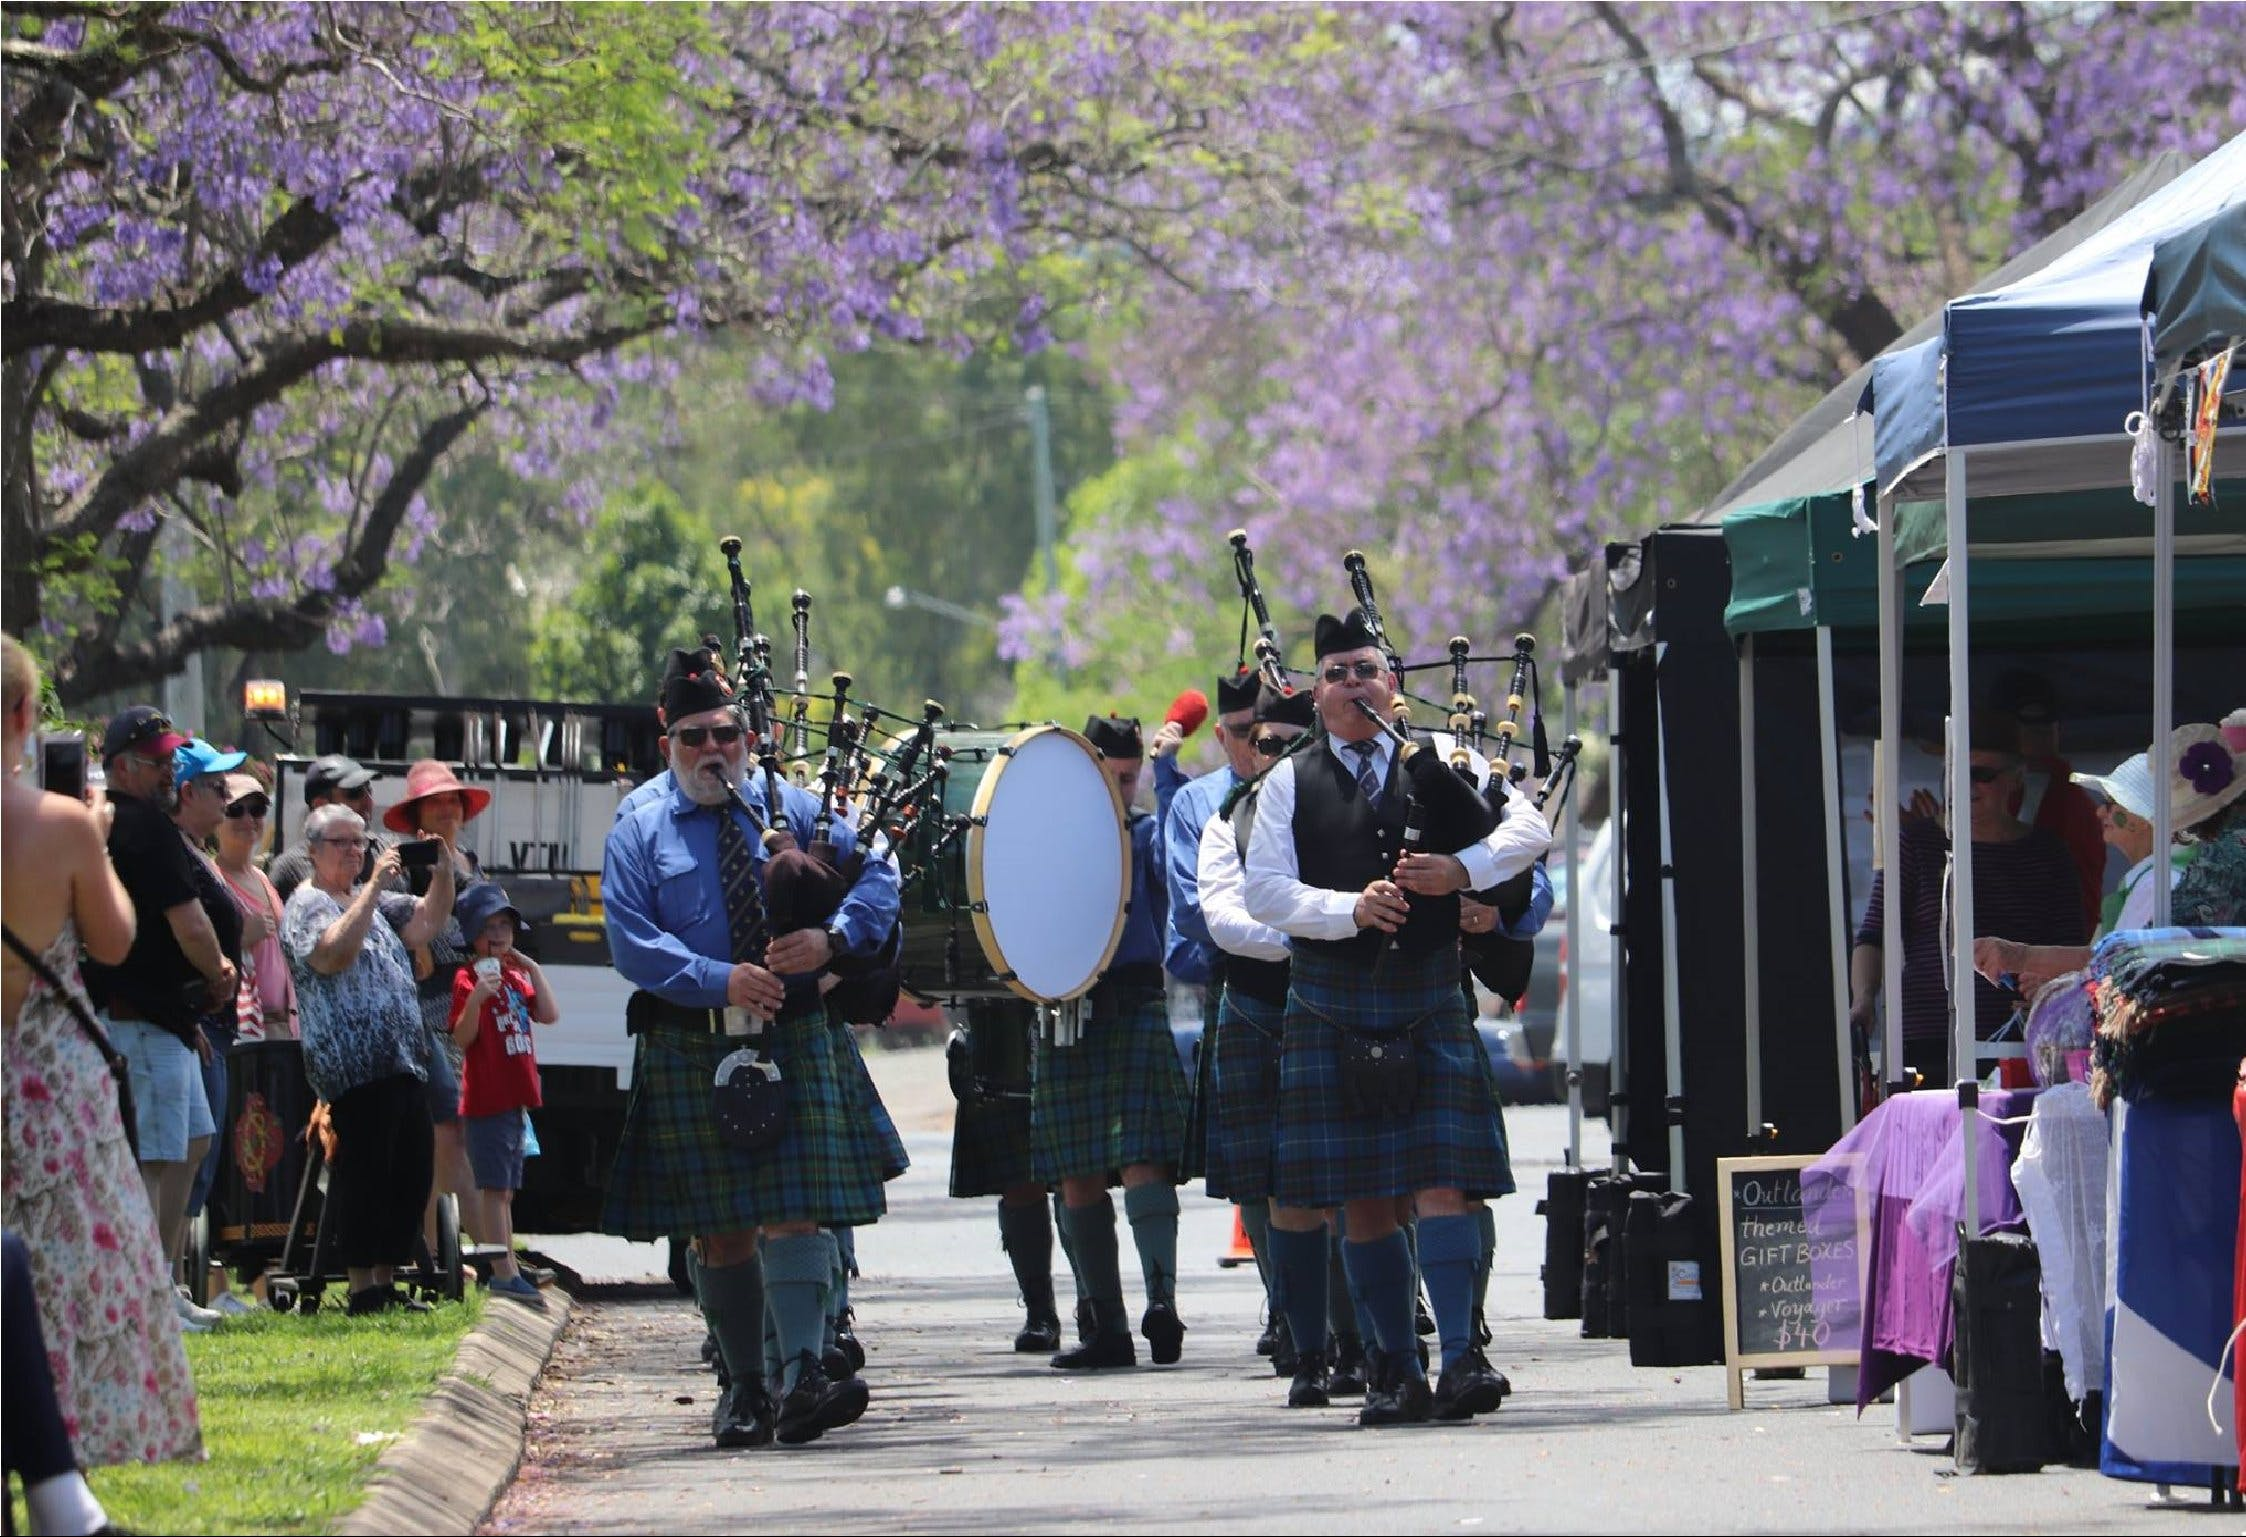 Celtic Festival of Queensland - Accommodation in Surfers Paradise